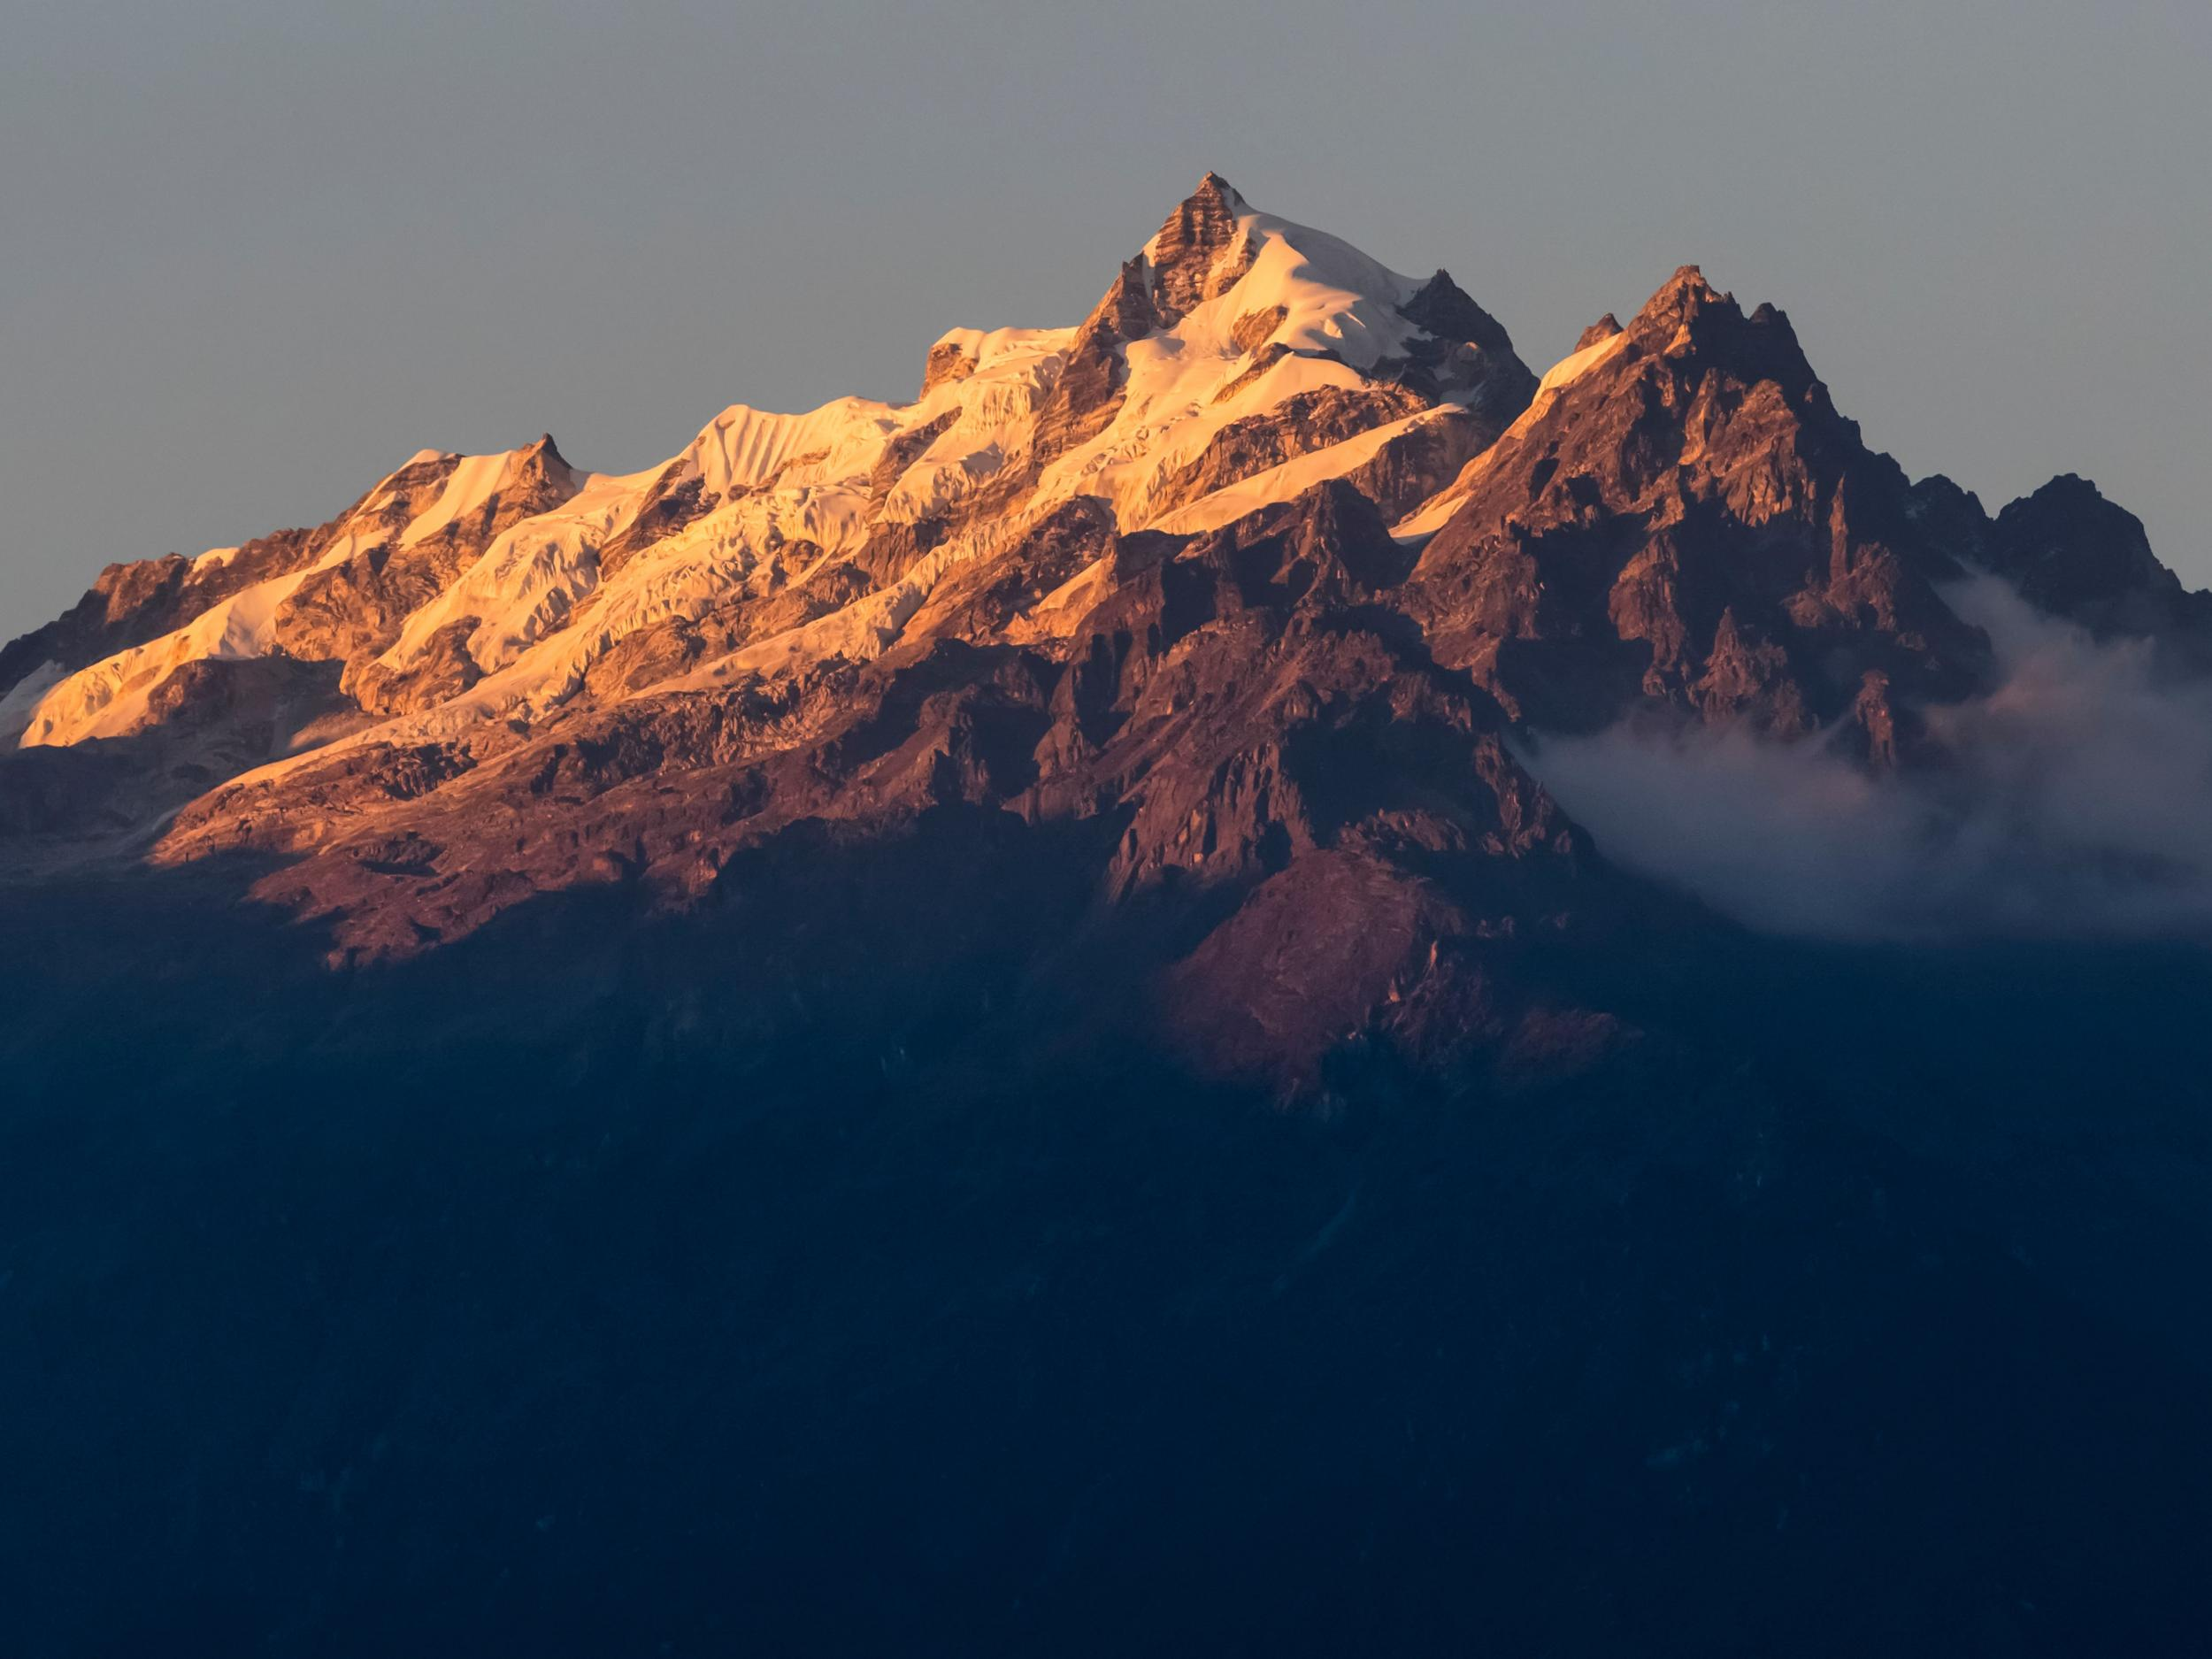 Himalayas seen for first time in decades after pollution drop